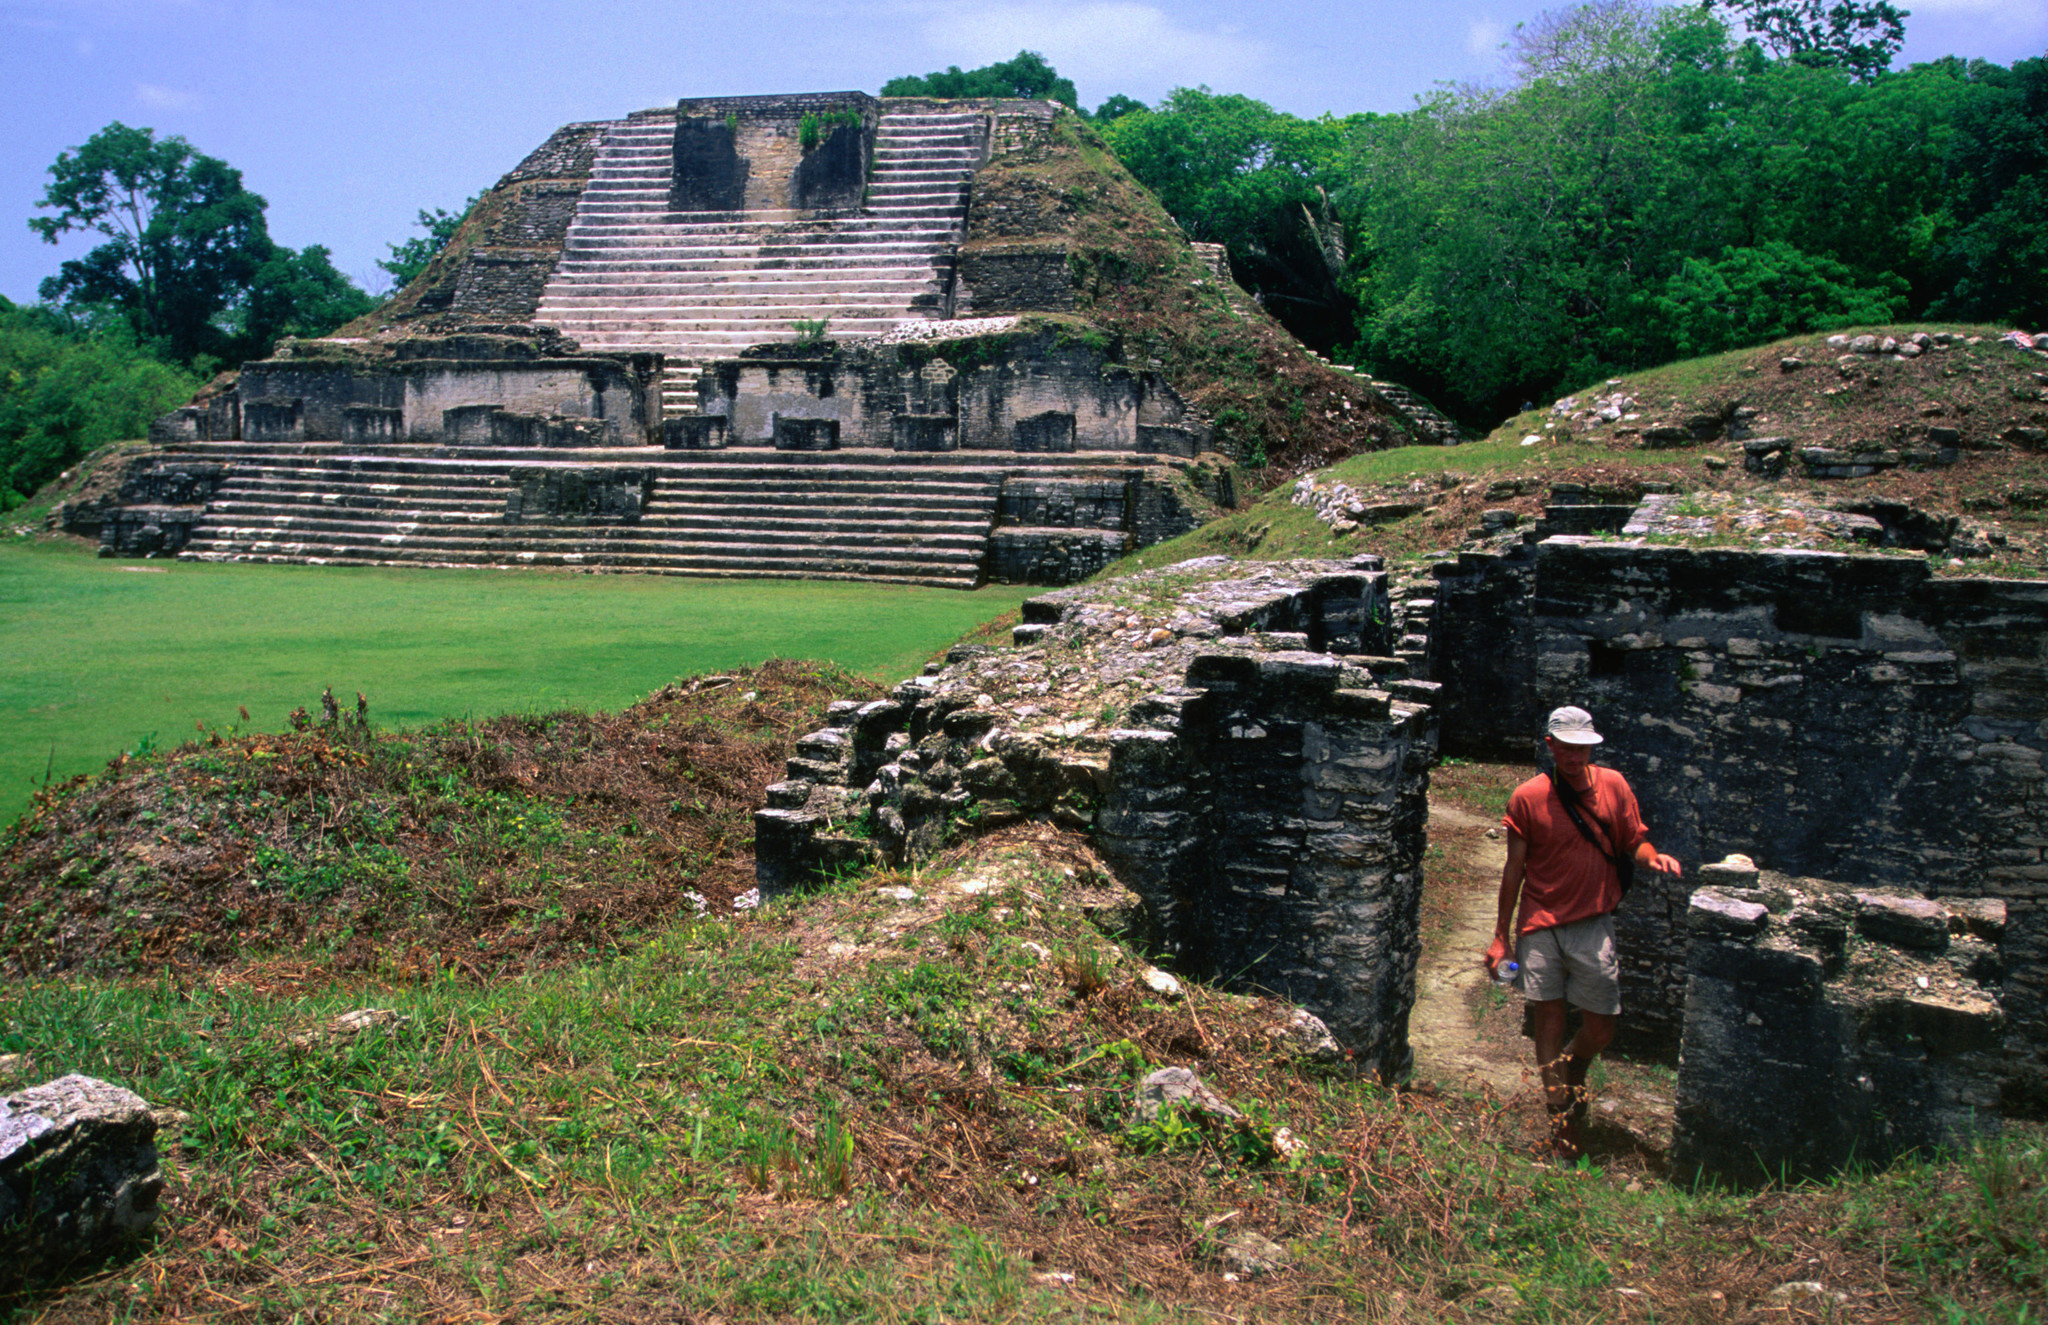 The Mayan ruins of Altan Ha are easily accessible from Caye Caulker. Belize